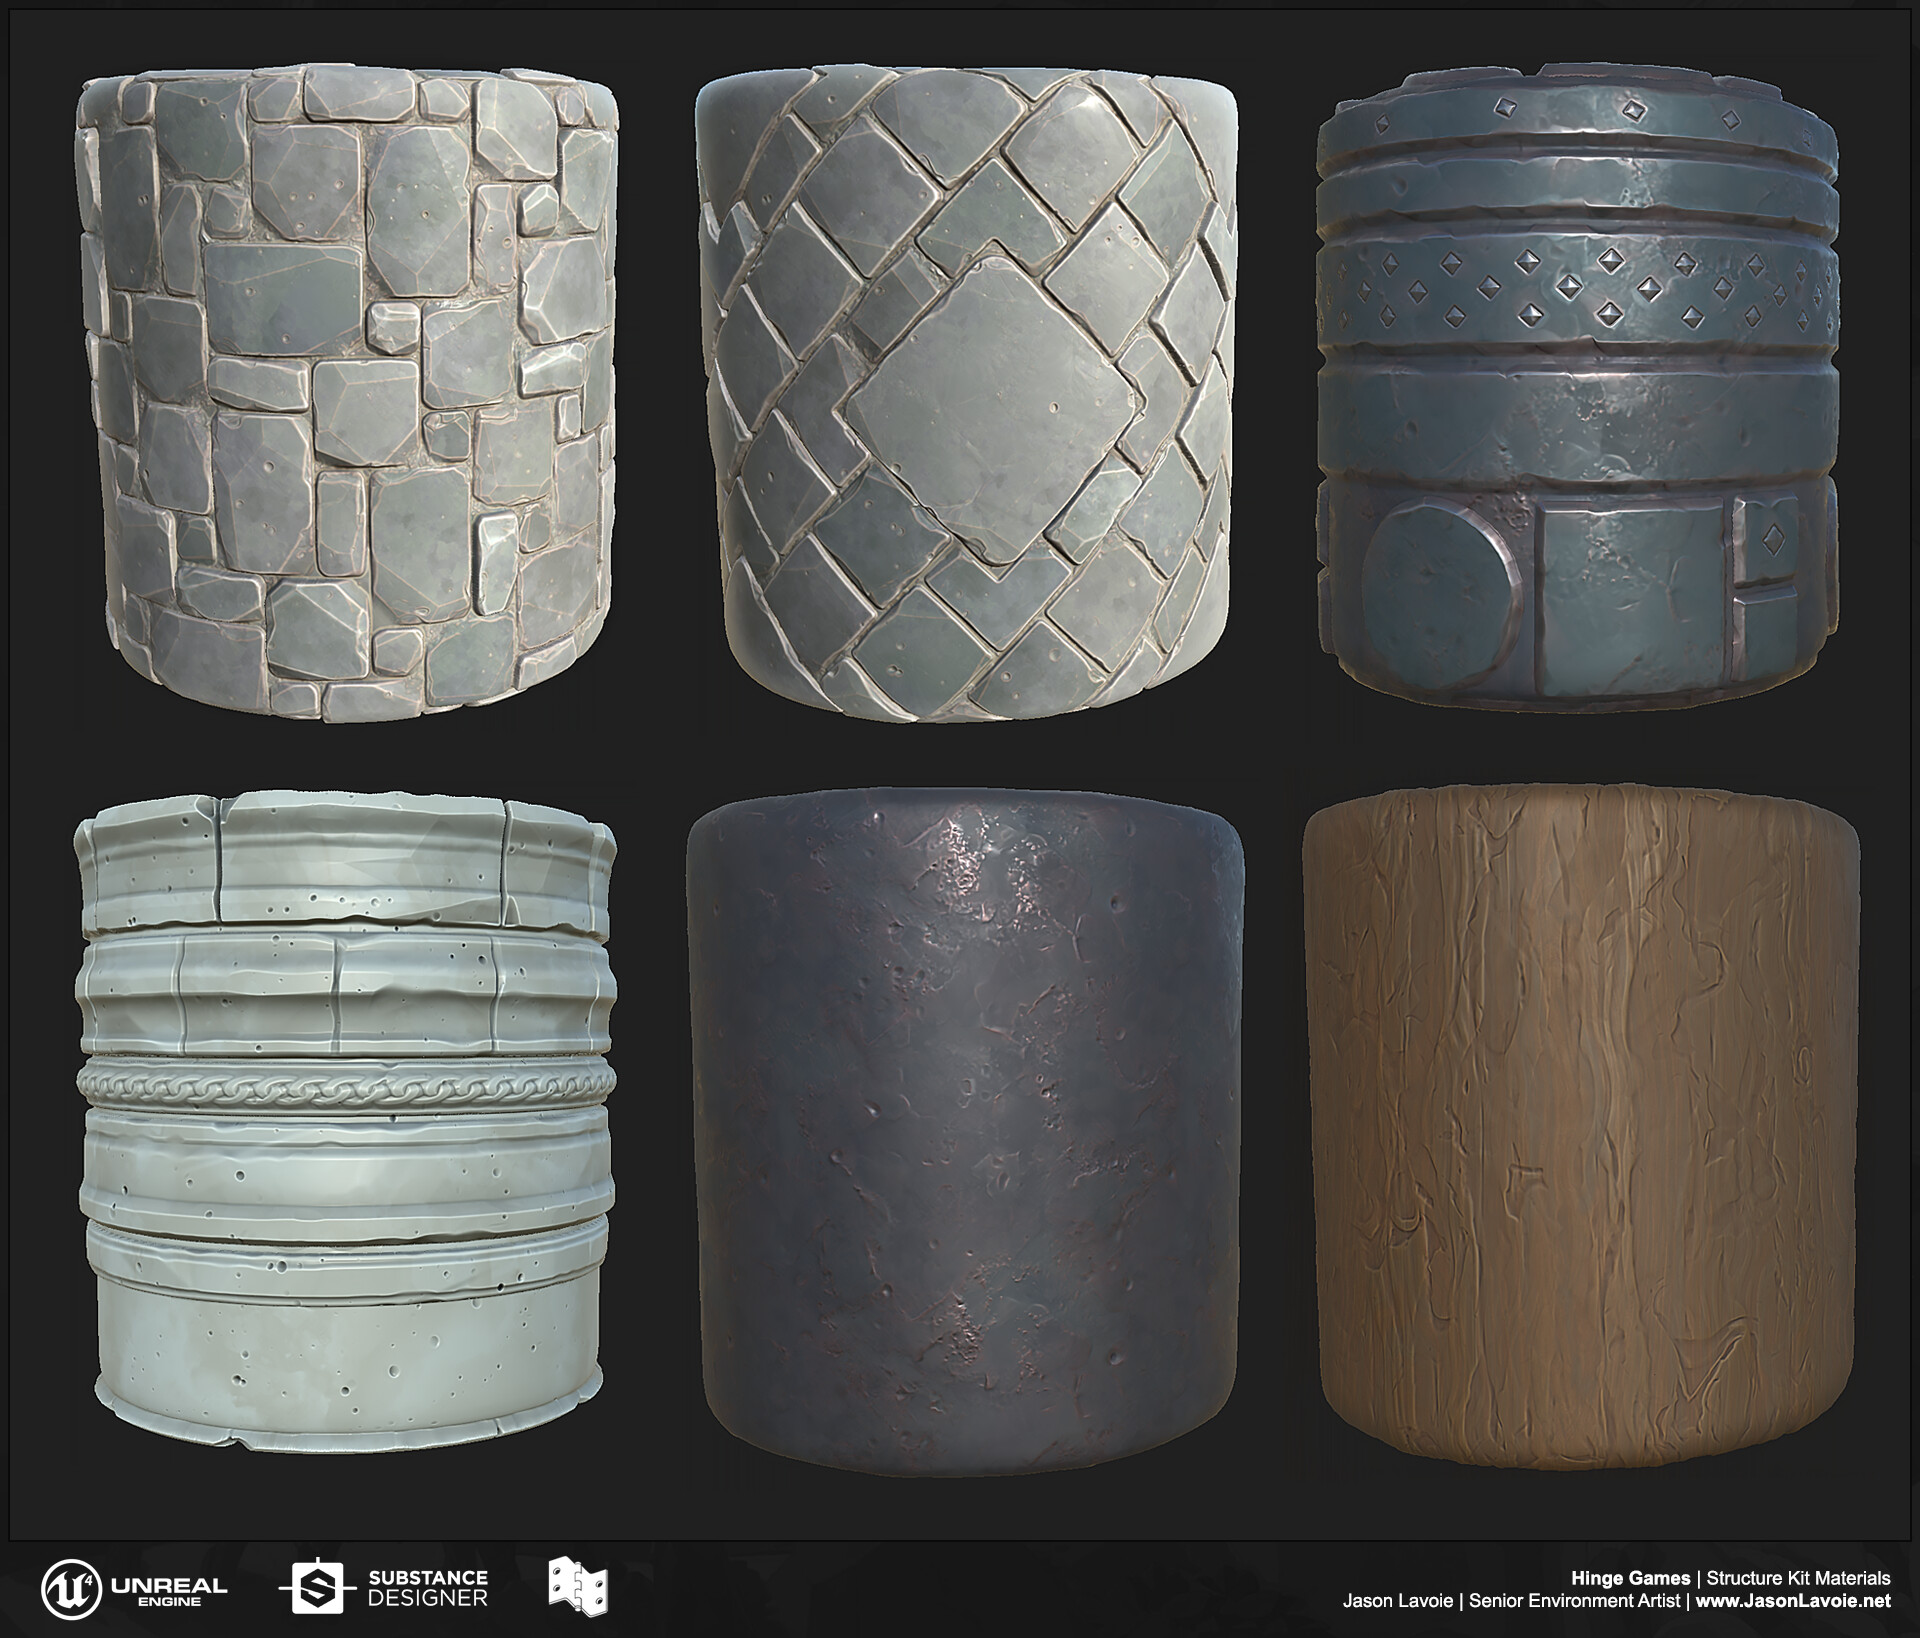 All materials were built in Substance Designer